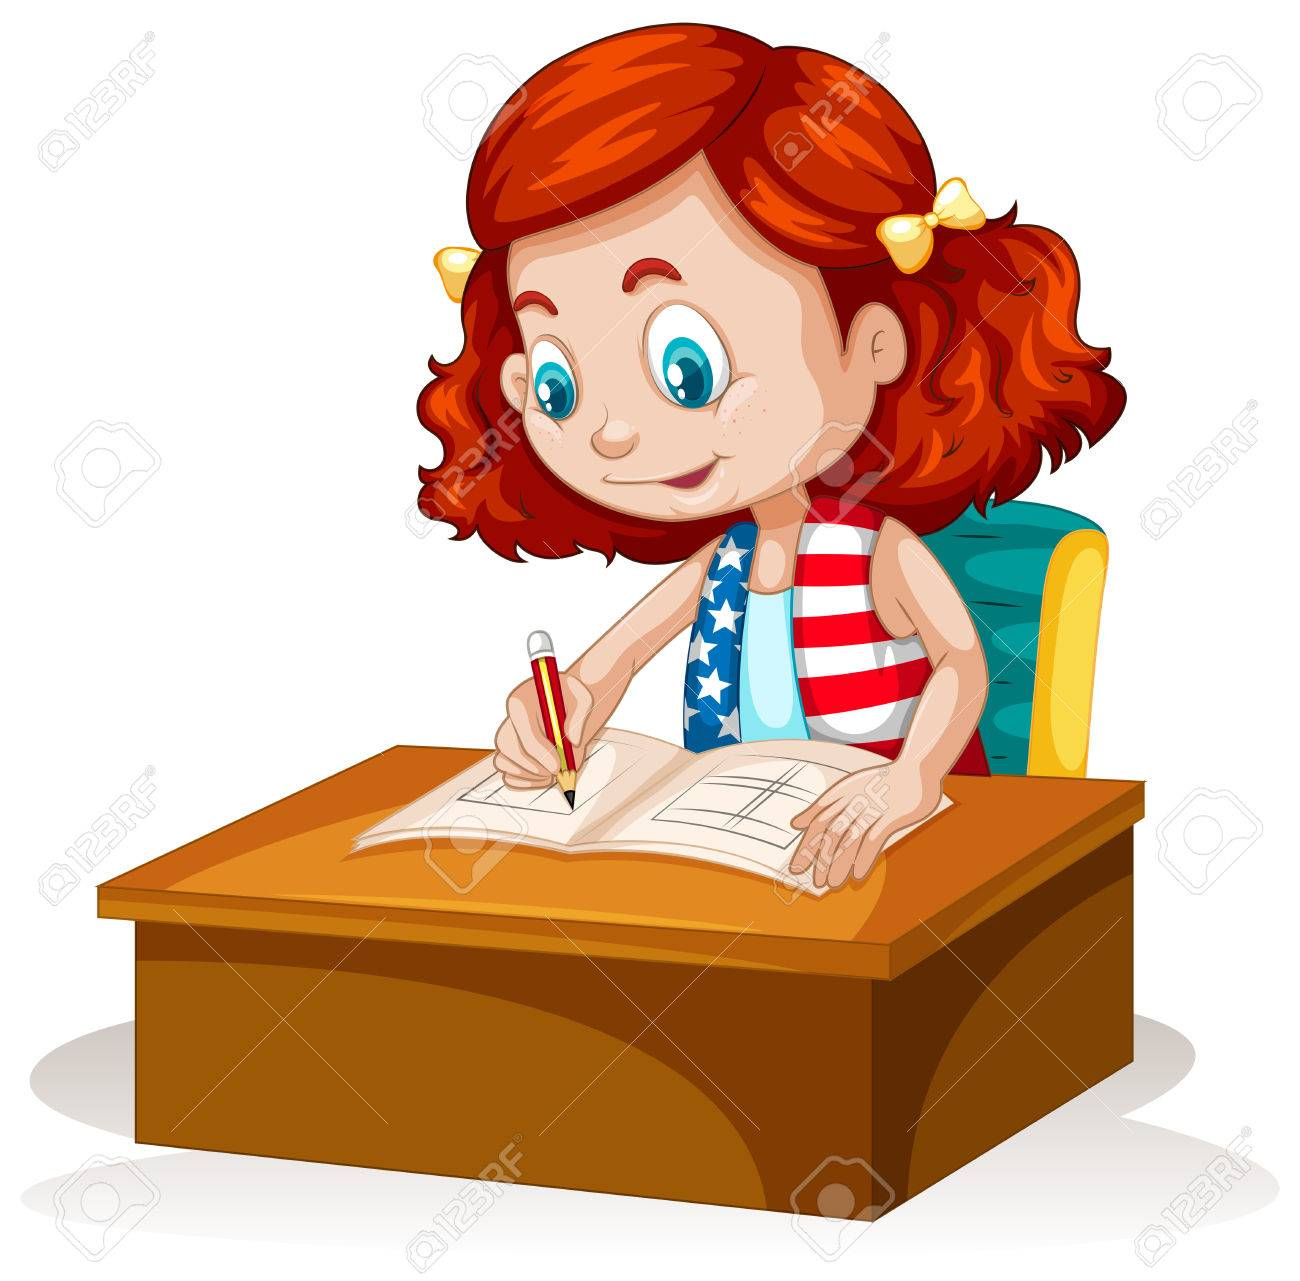 1300x1281 Little Girl Writing On The Table Illustration Royalty Free